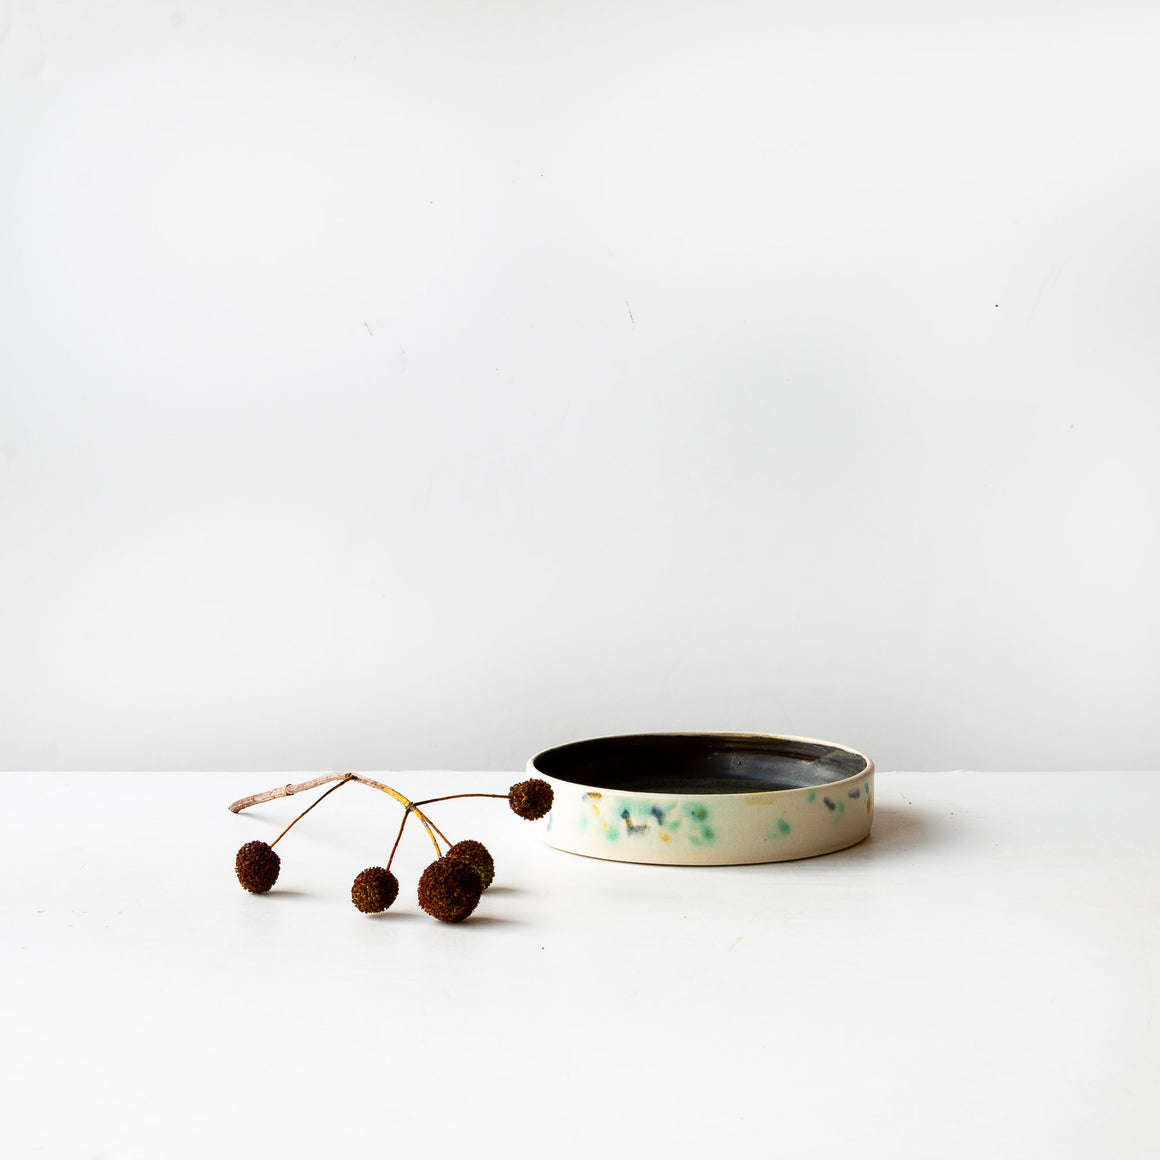 Hanabira - Three Handmade Round Ceramic Trays - Makiko Hicher-Nakamura - Sold by Chic & Basta